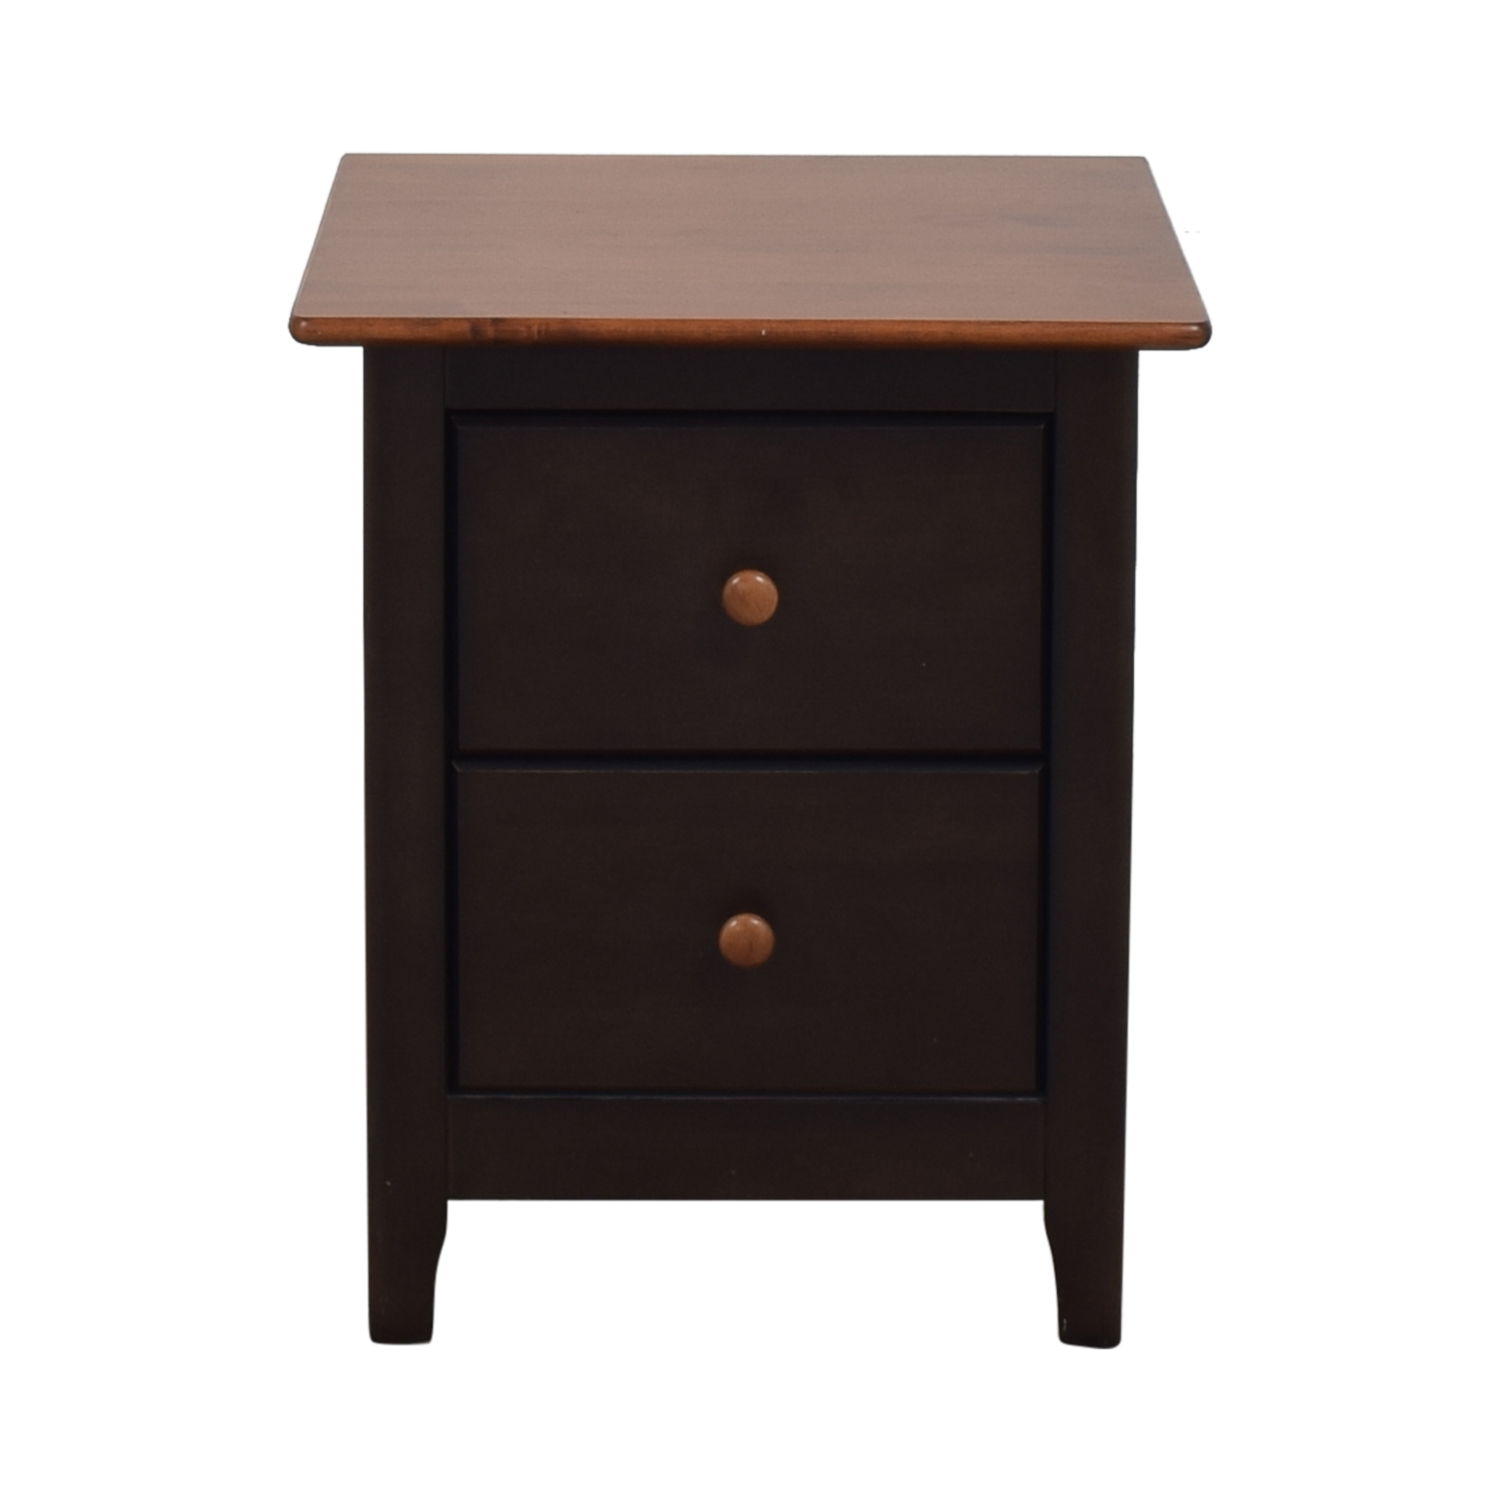 Nadeau Nadeau Two Tone End Table End Tables